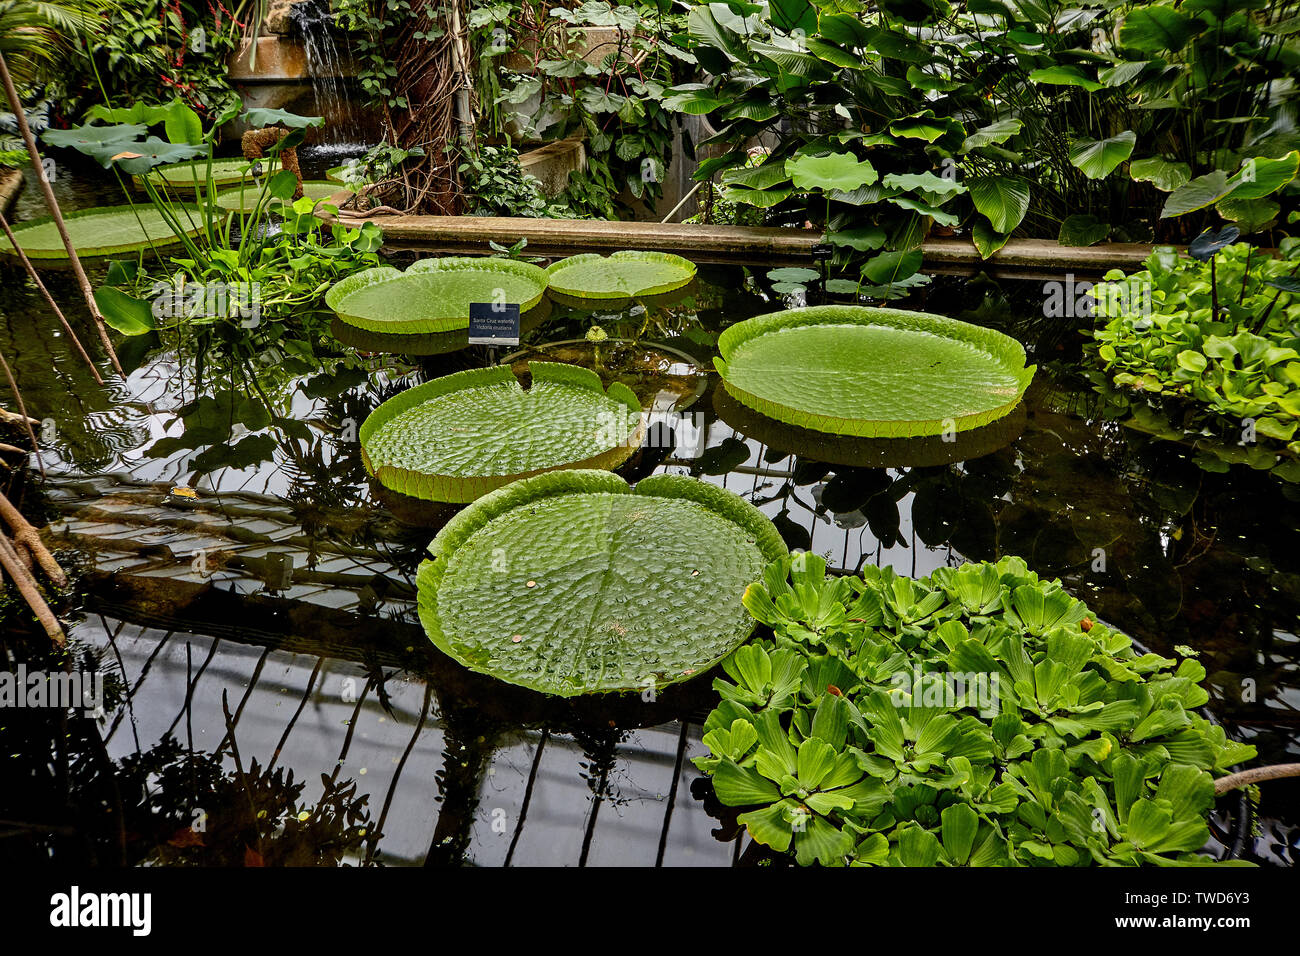 Royal Botanic Gardens, The collections include over 28,000 taxa of living plants, 8.3 million plant and fungal herbarium specimens. Stock Photo